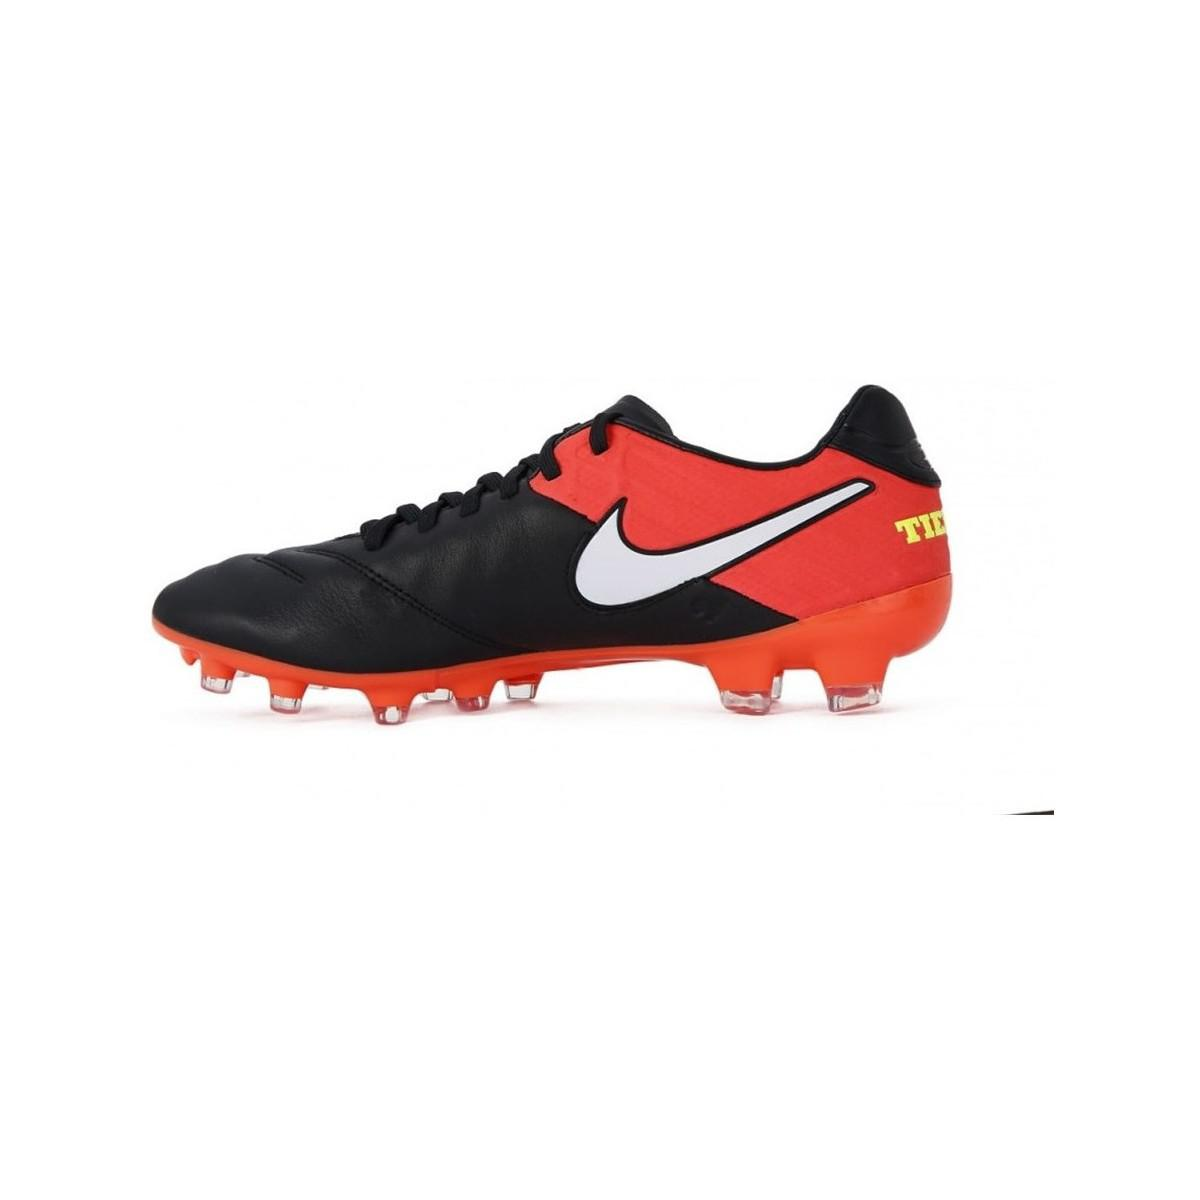 Nike - Tiempo Legacy Ii Fg Men s Football Boots In Black for Men - Lyst.  View fullscreen bf3649165d24e